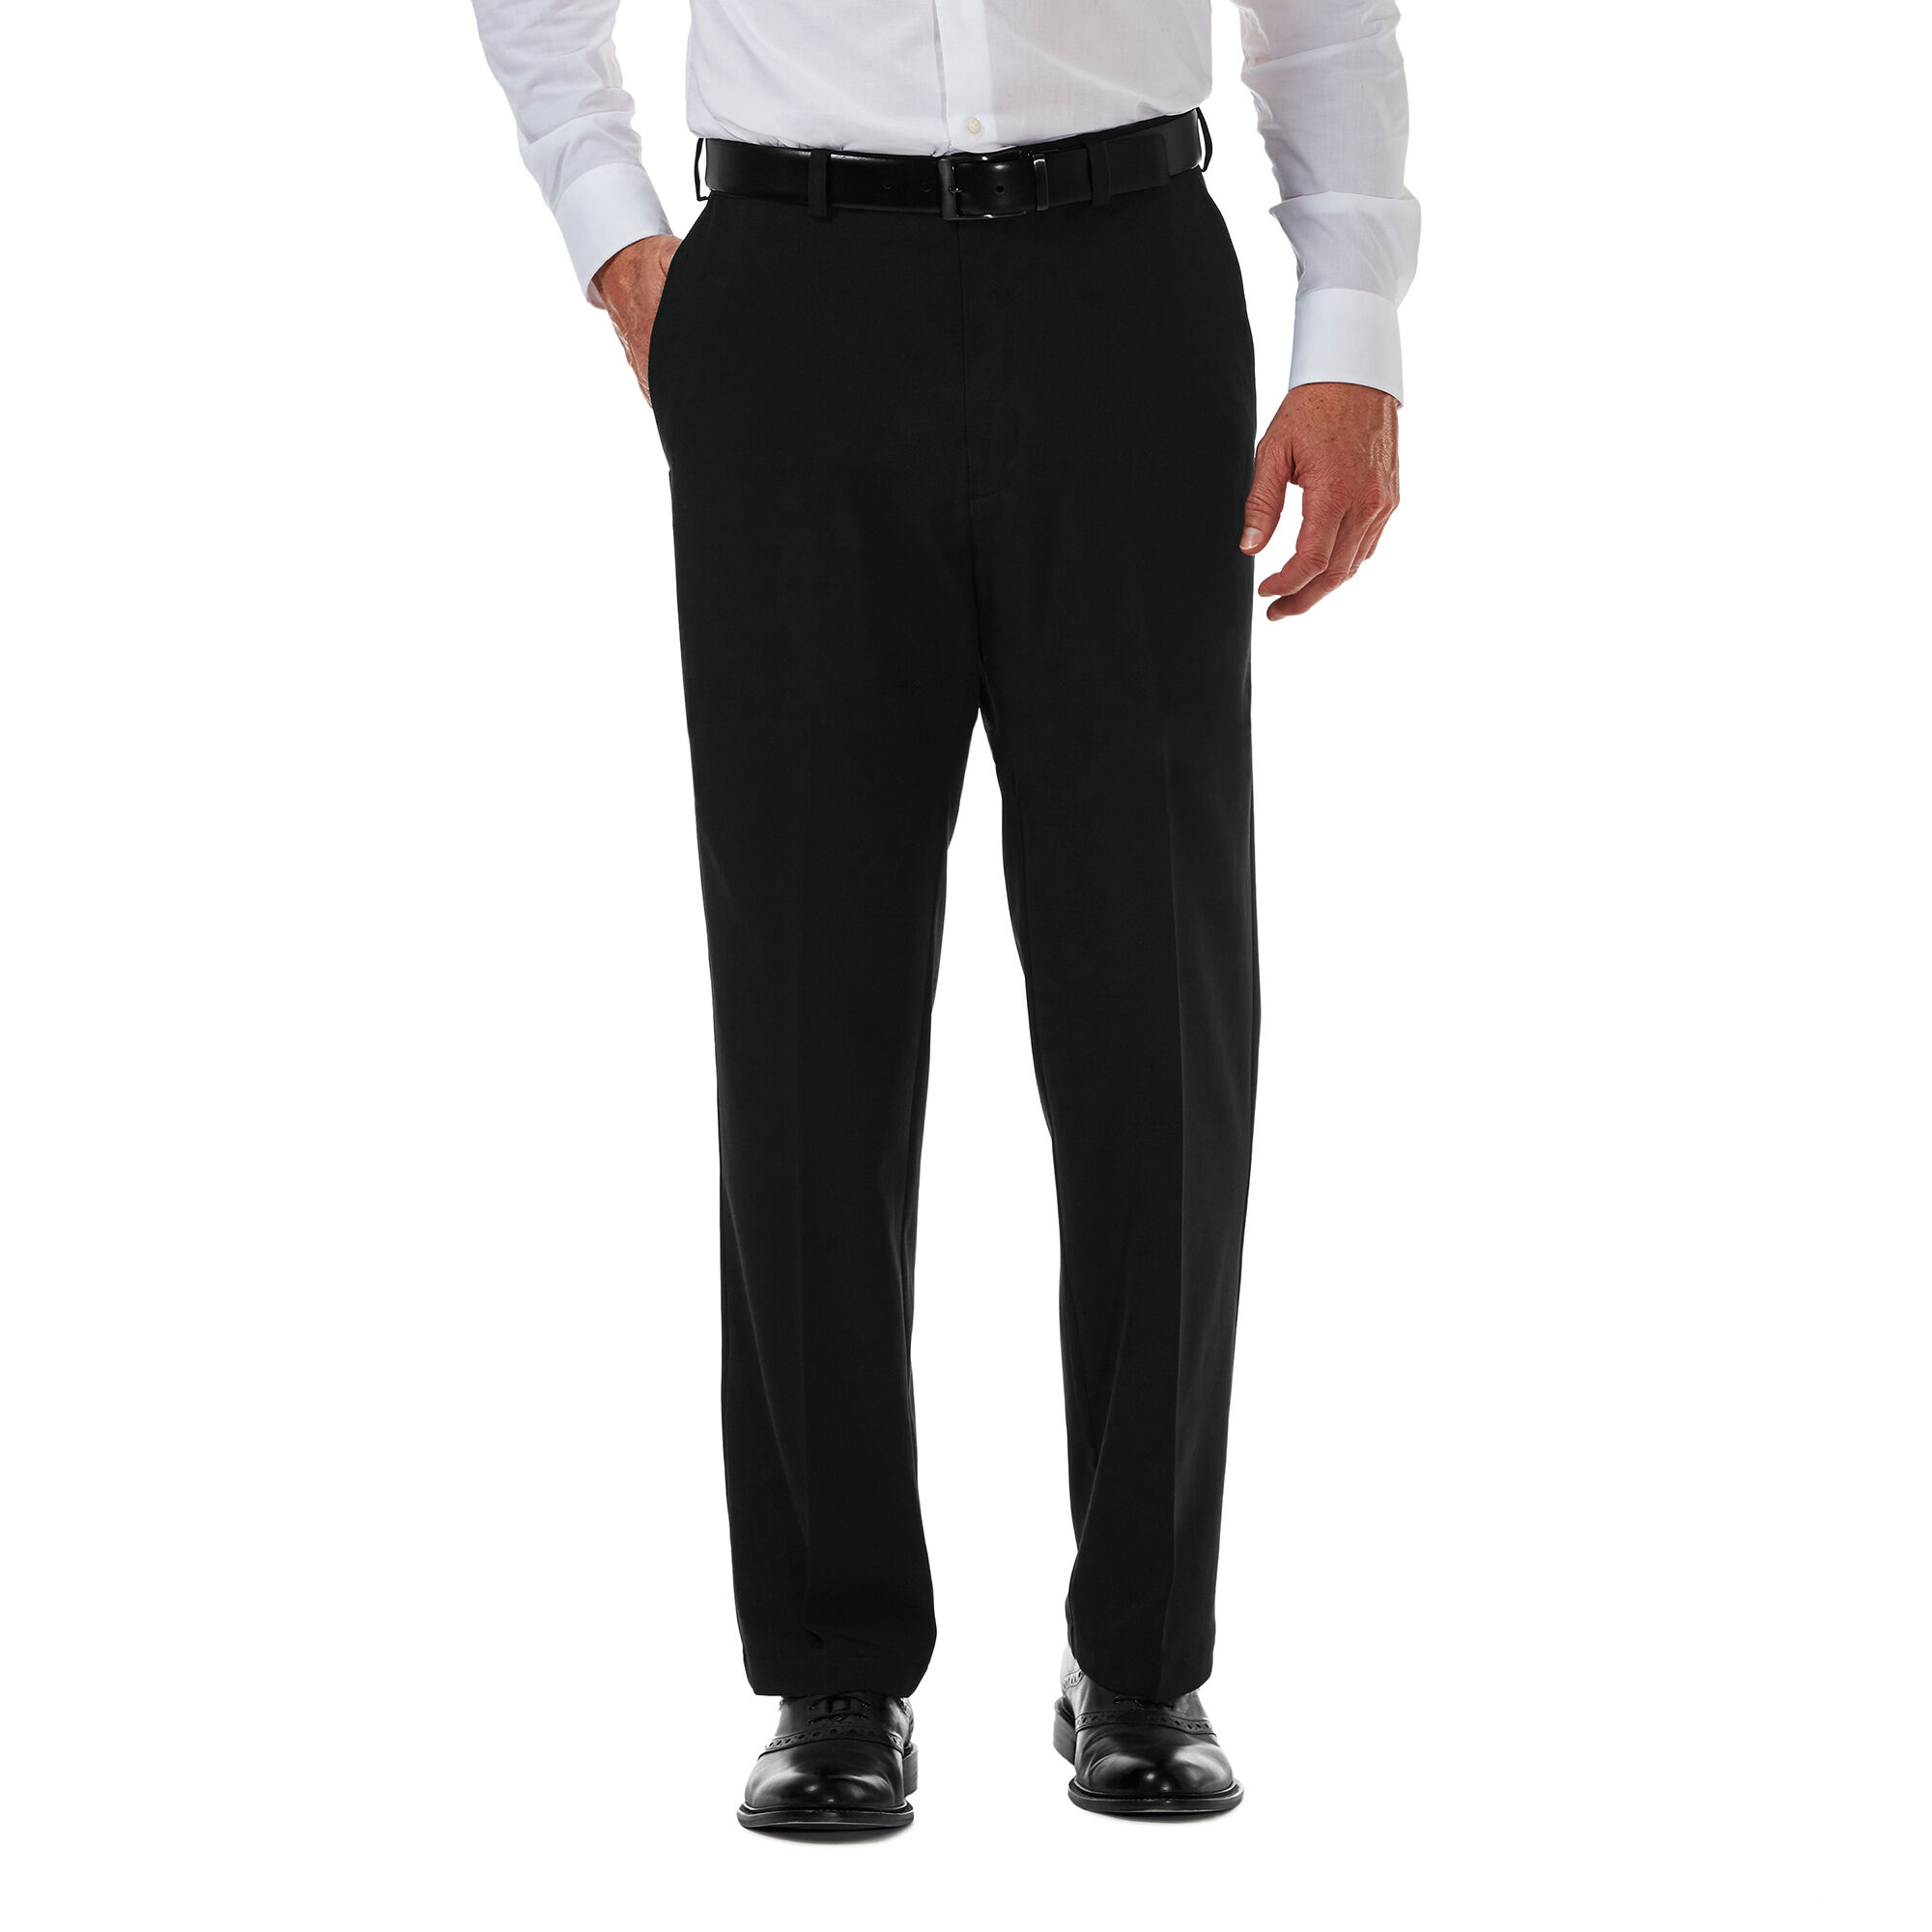 145dde659c1b Cool 18 Pro Pant| Classic Fit, Flat Front, Stretch, No Iron | Haggar.com